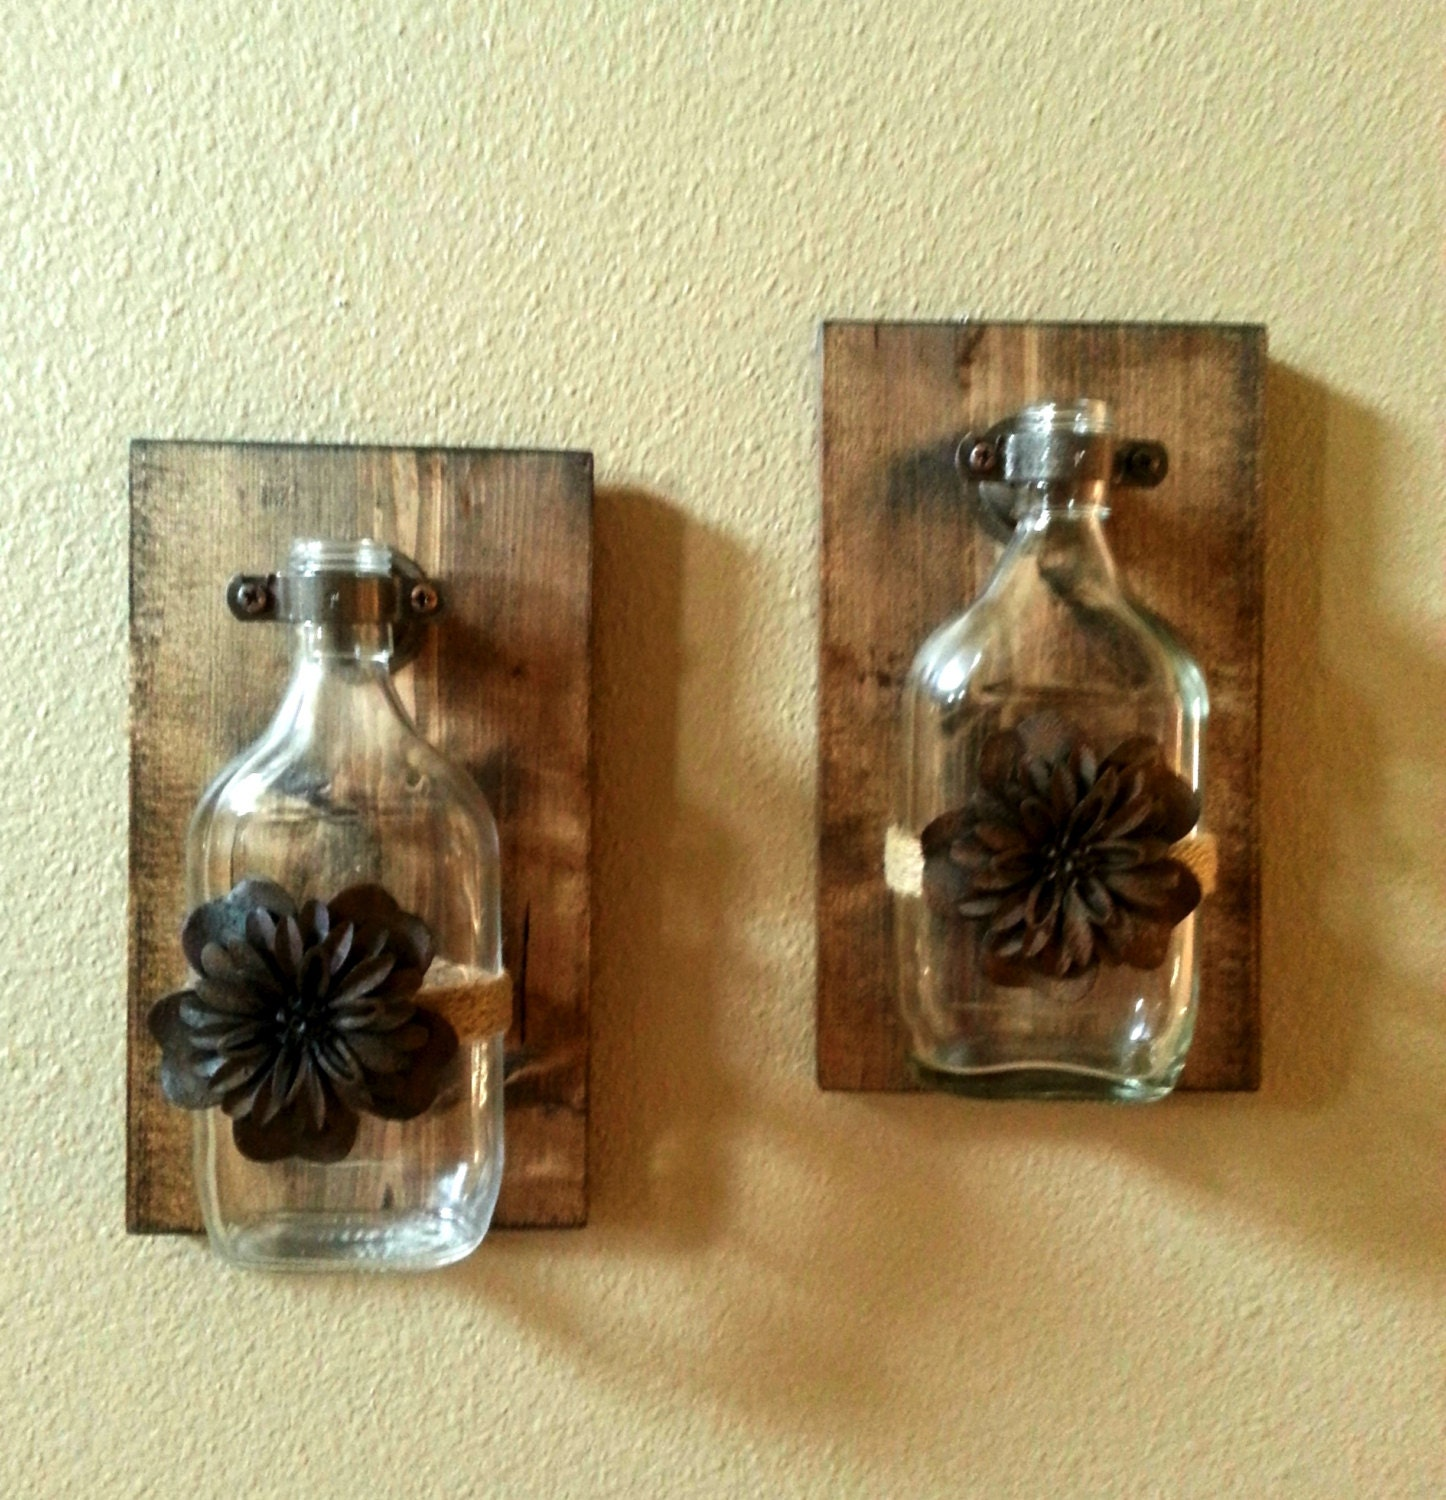 Rustic Wall Decor For Bathroom rustic decor rustic glass vase rustic wall decor kitchen